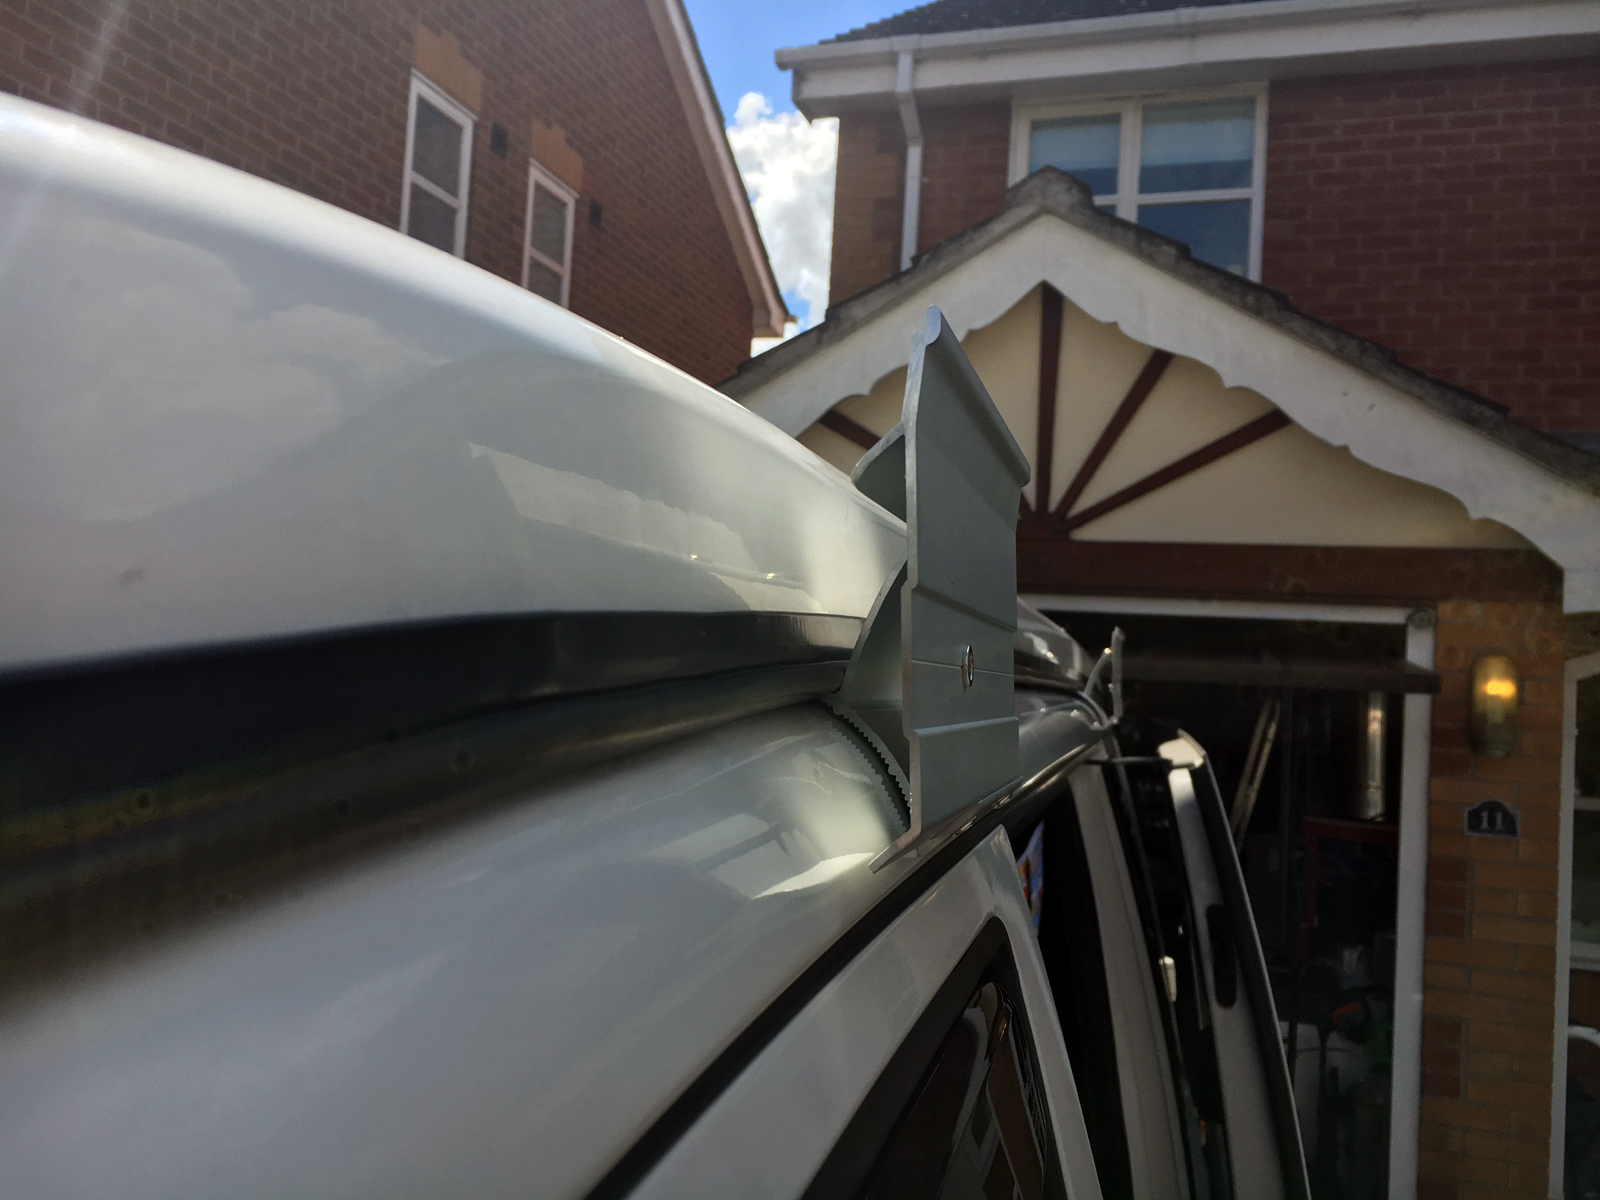 Fitting A Fiamma F45s Awning To T5 Transporter Volkscamper